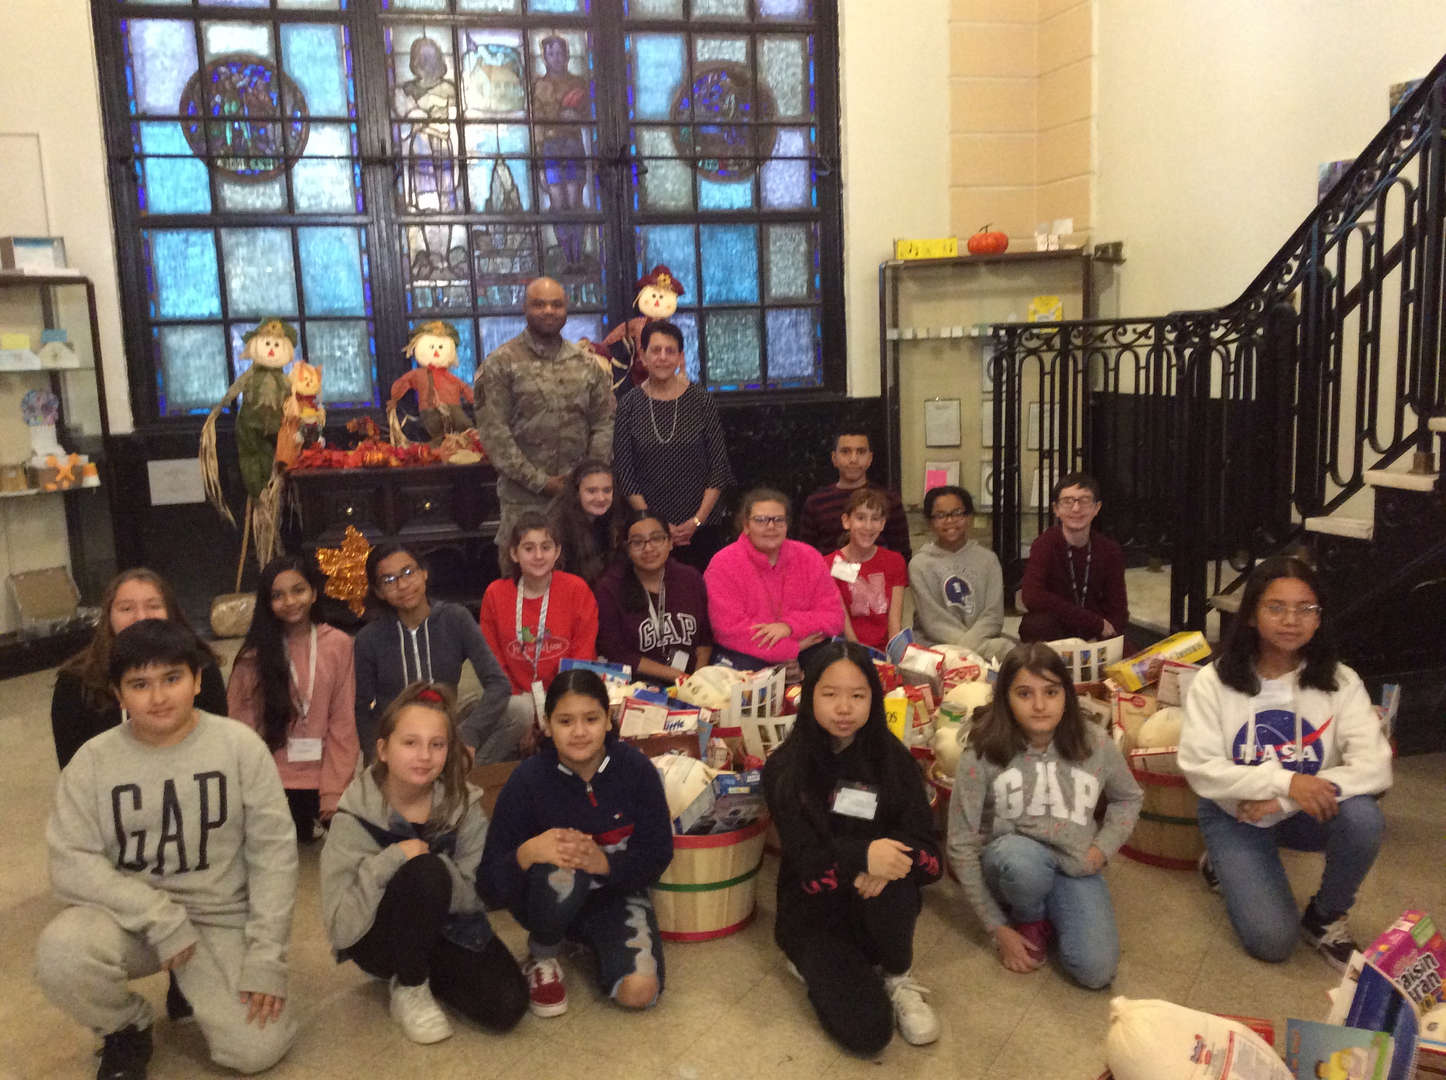 Principal DiBella, US Soldier and PS IS 104 students with all Baskets filled with donated food.